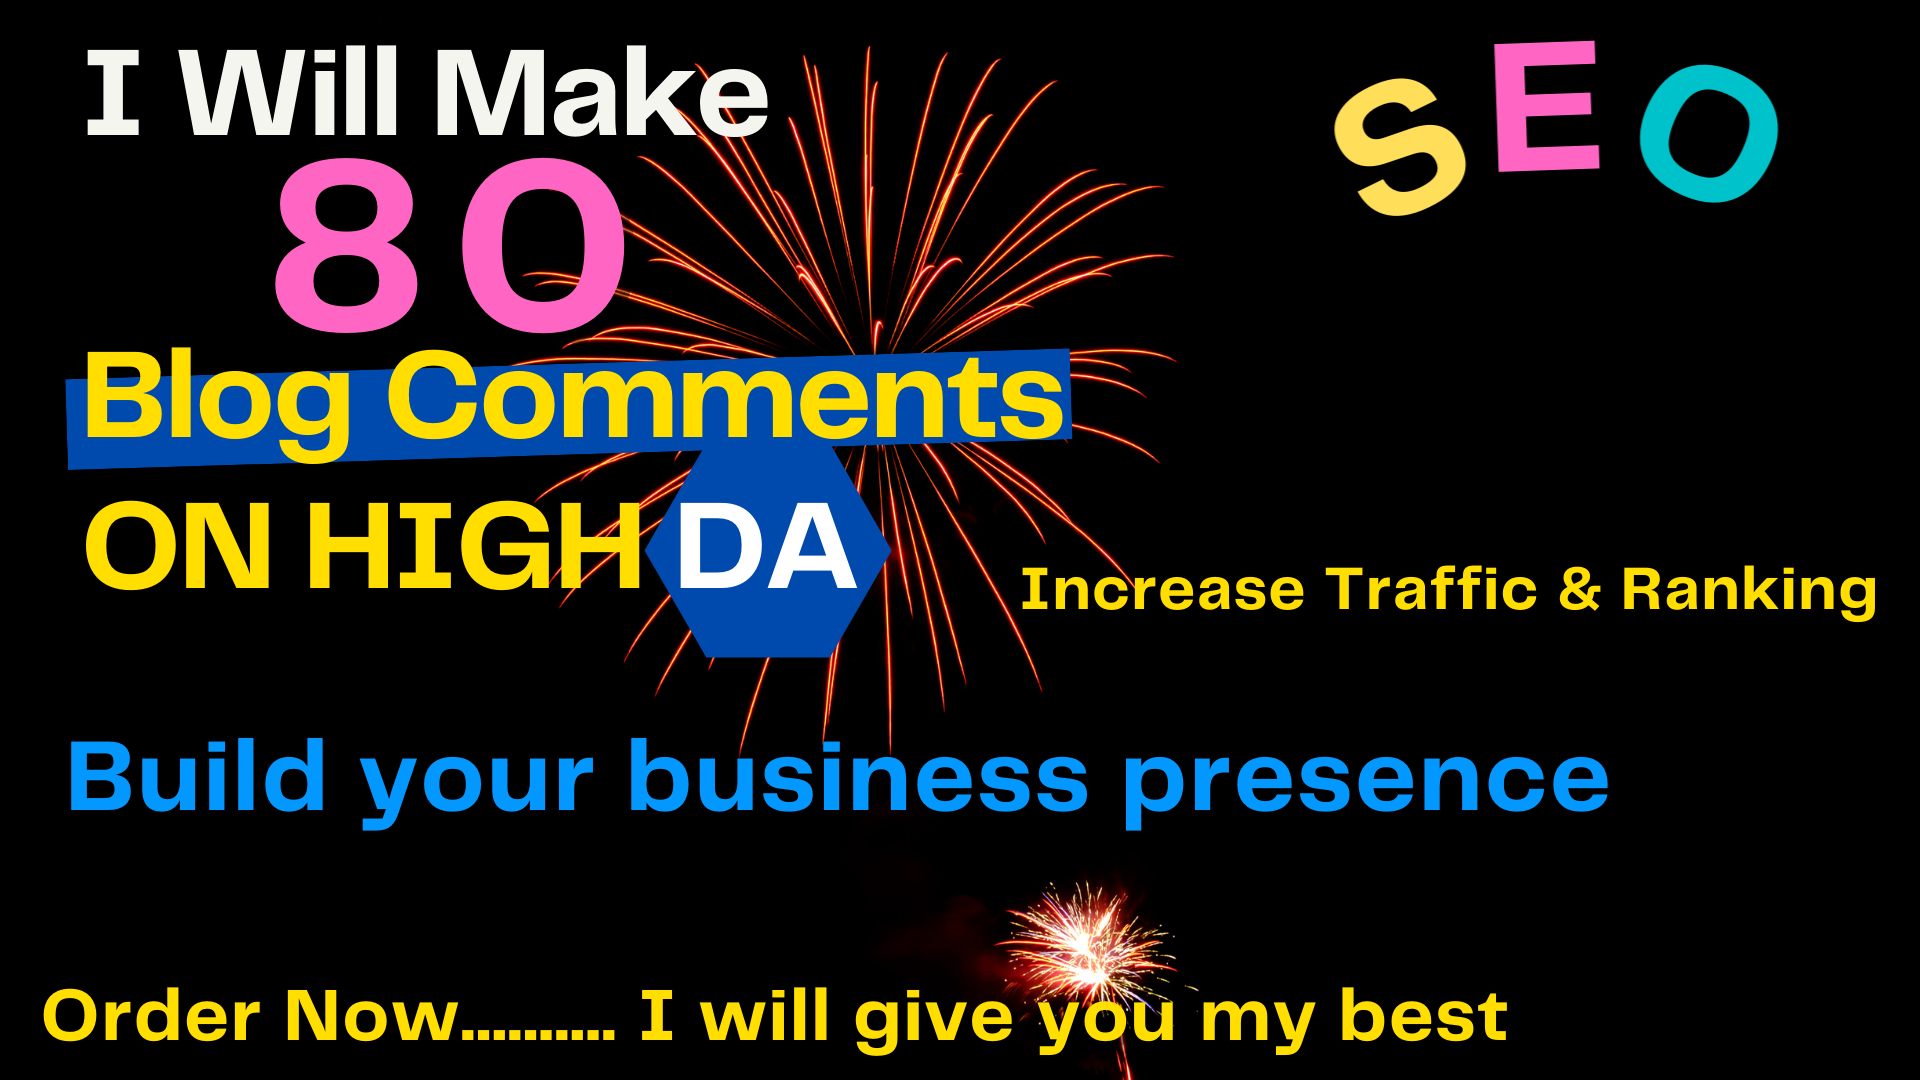 I will make 80 Blog Comments on Top Google Ranking on High DA